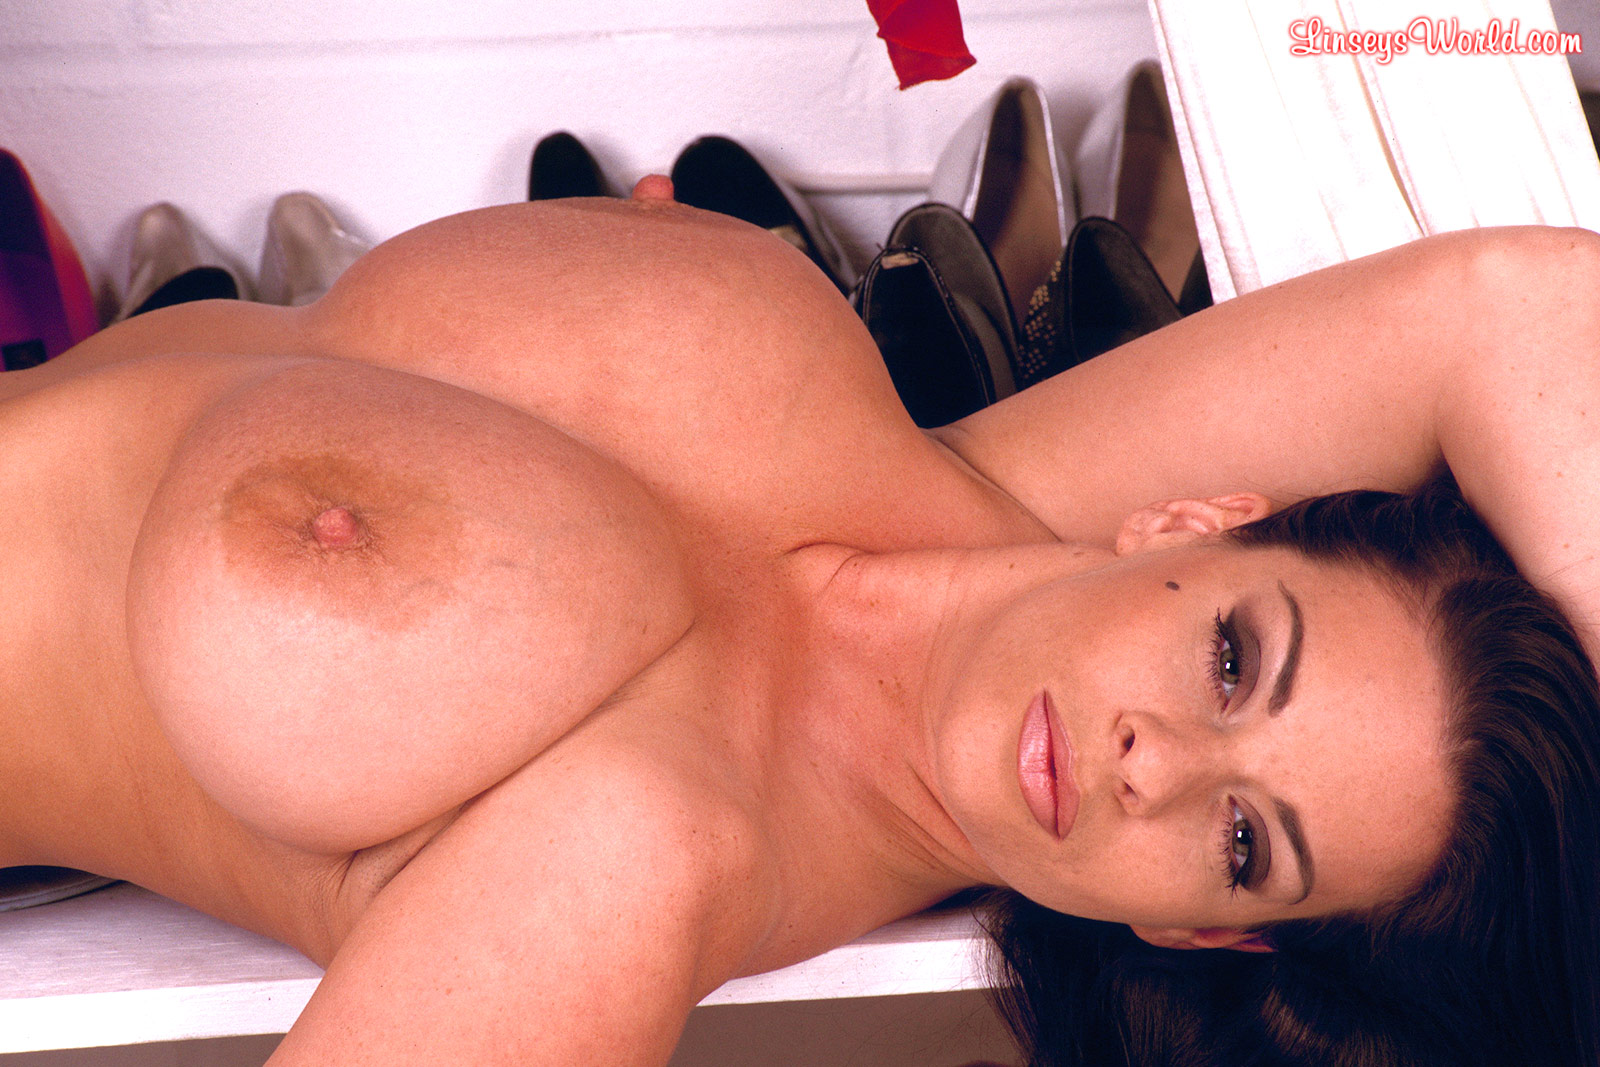 Linsey dawn mckenzie fan